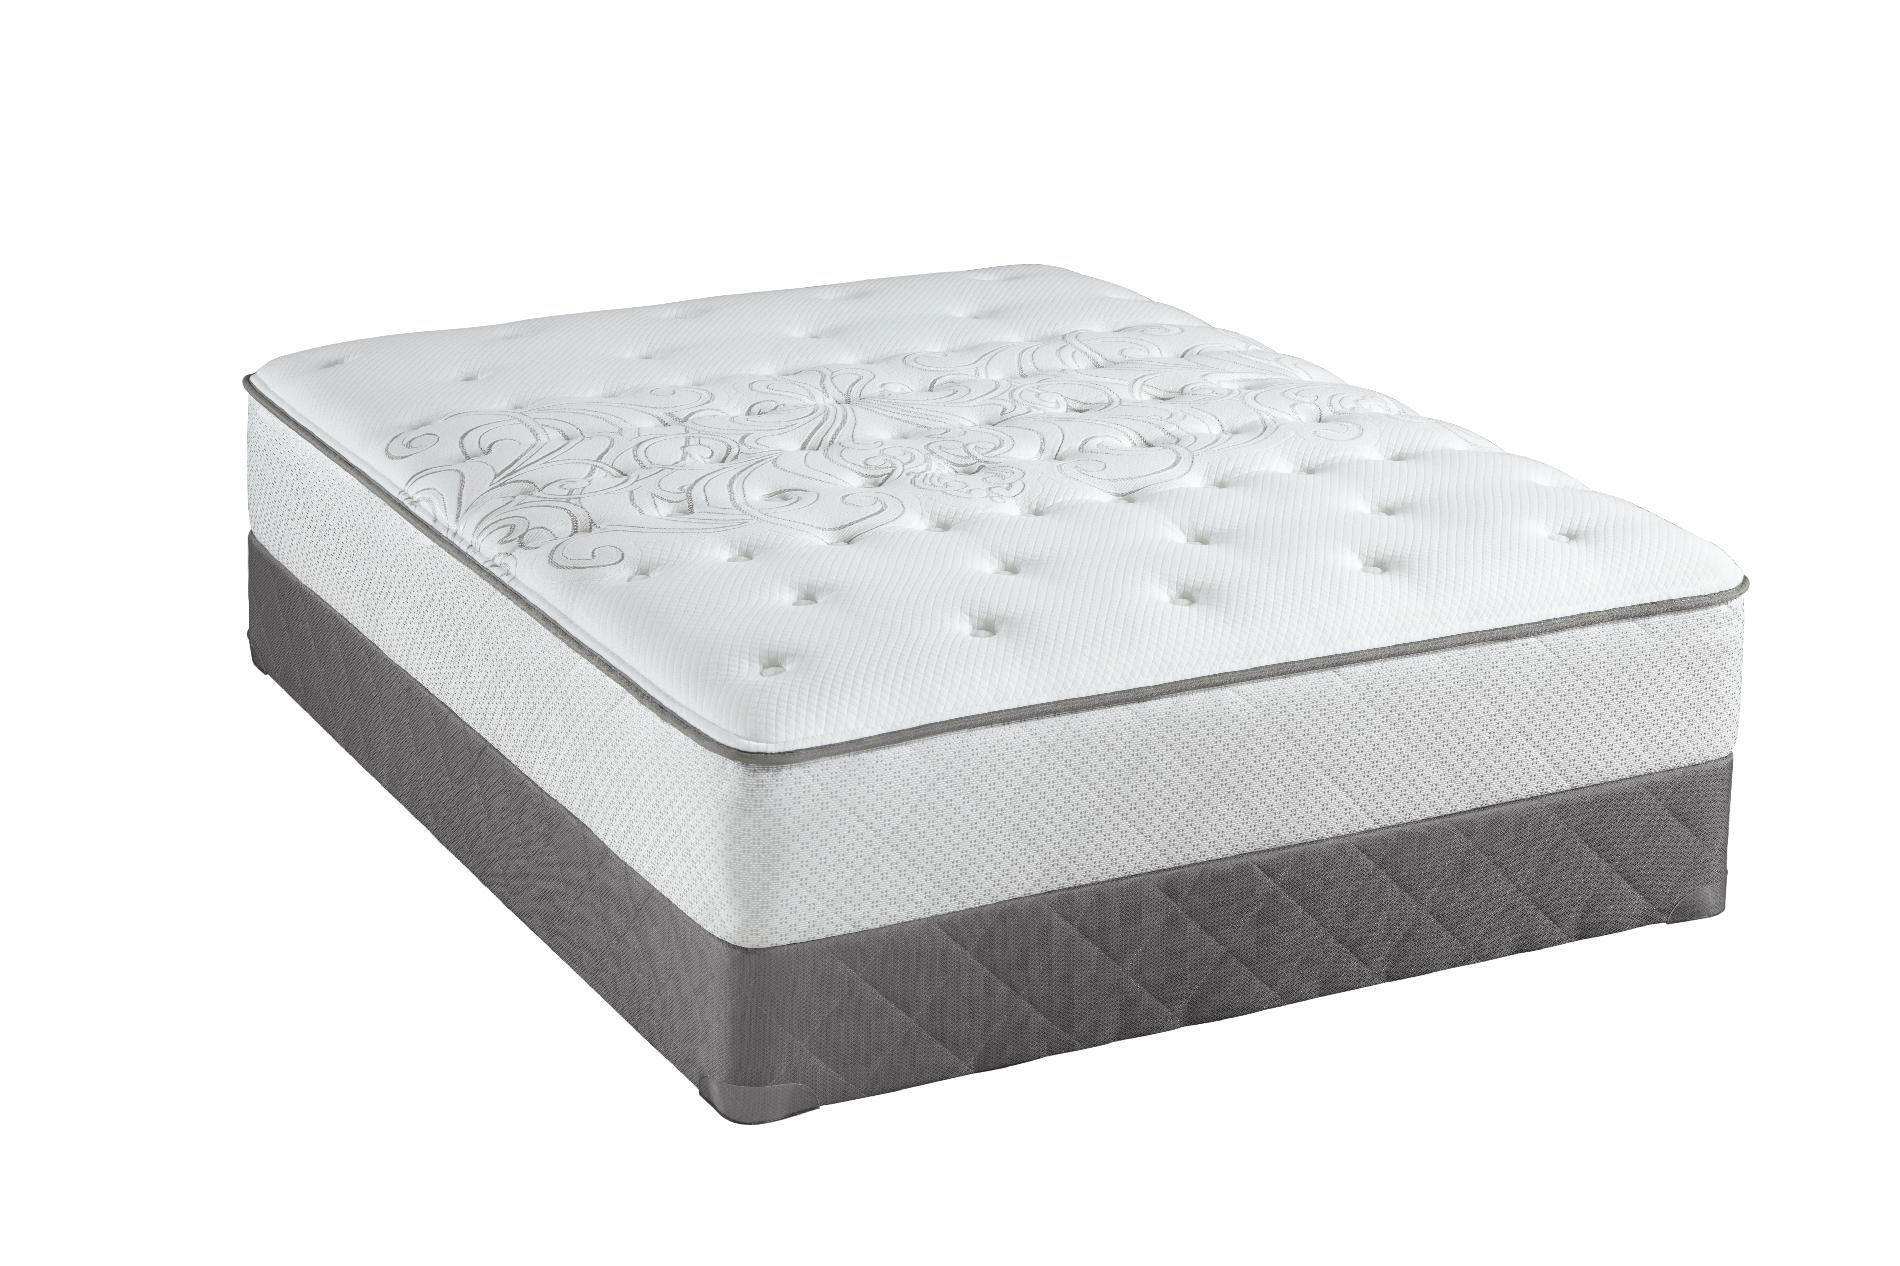 Sealy Posturepedic Anaheim Ti, Cushion Firm, Queen Mattress Only